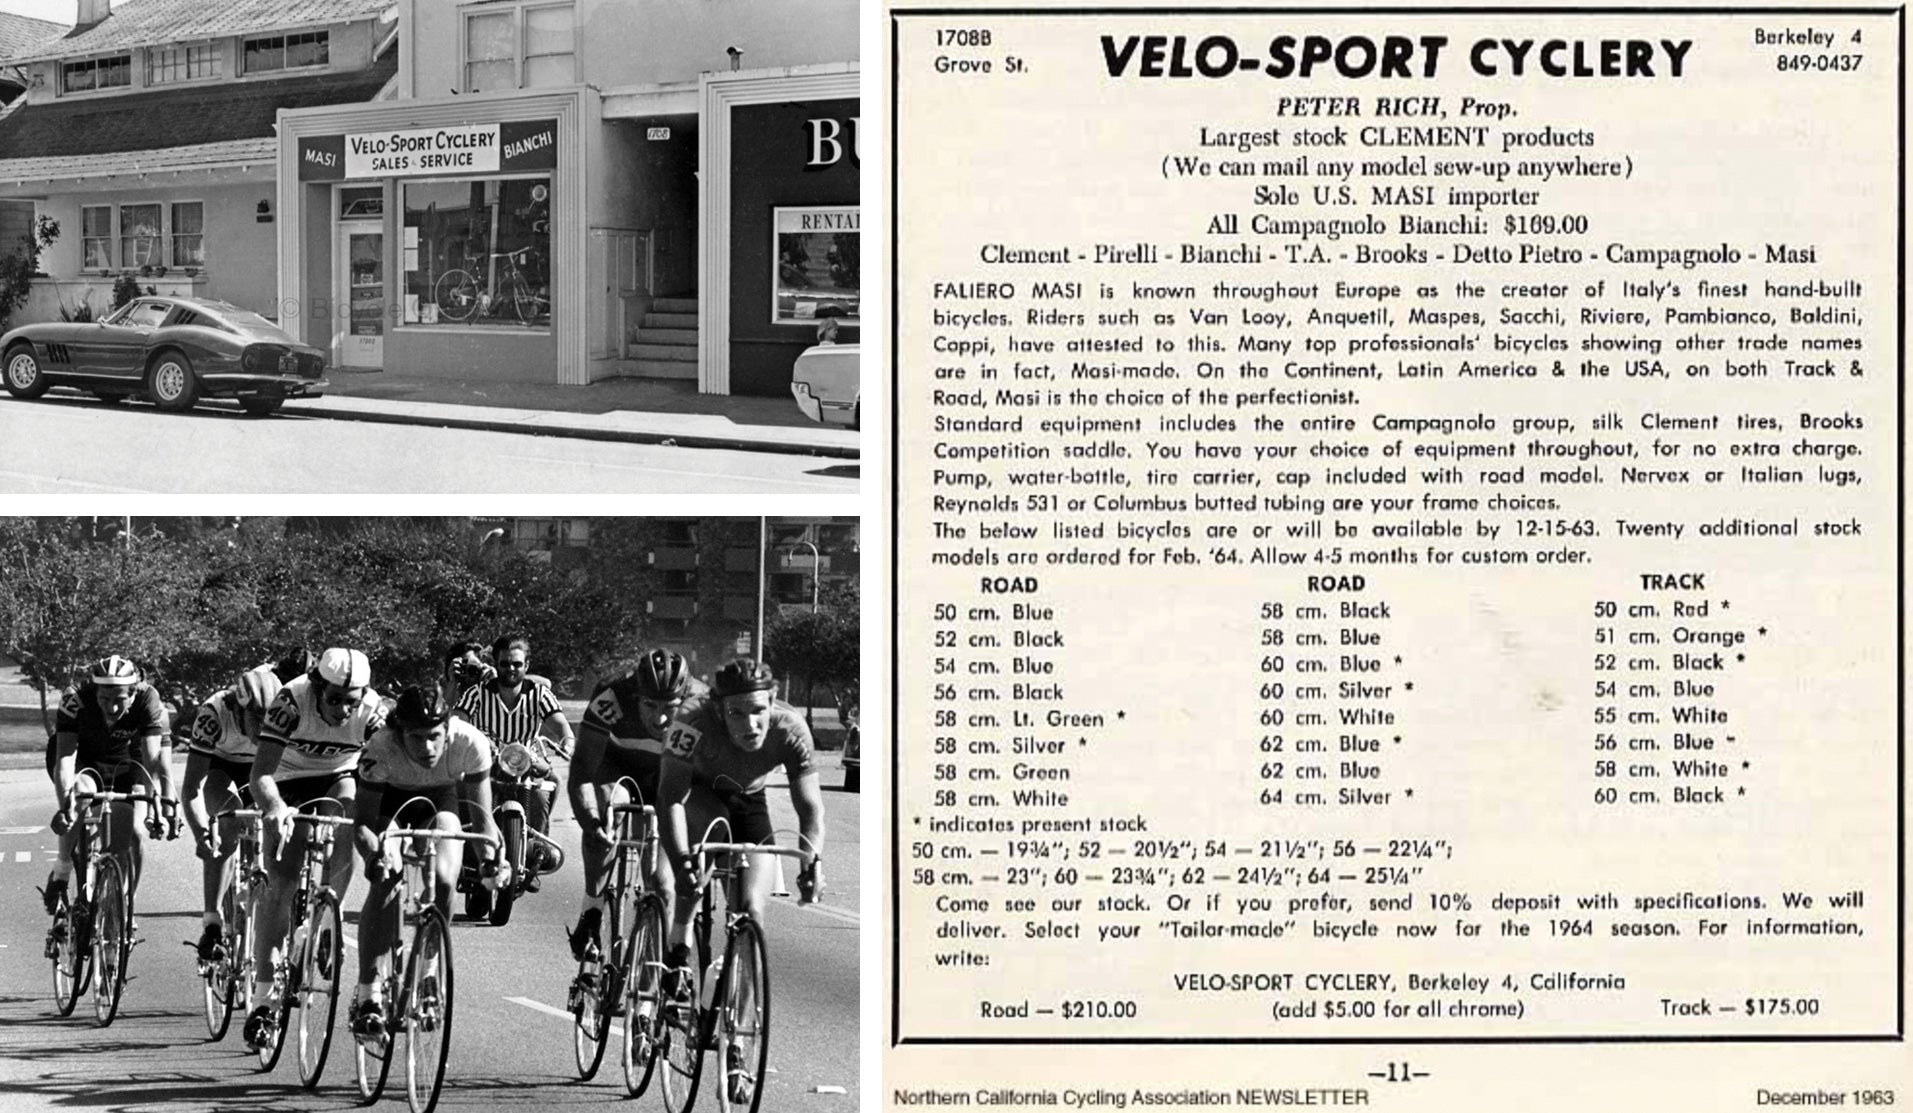 Velo-Sport Cyclery newsletter